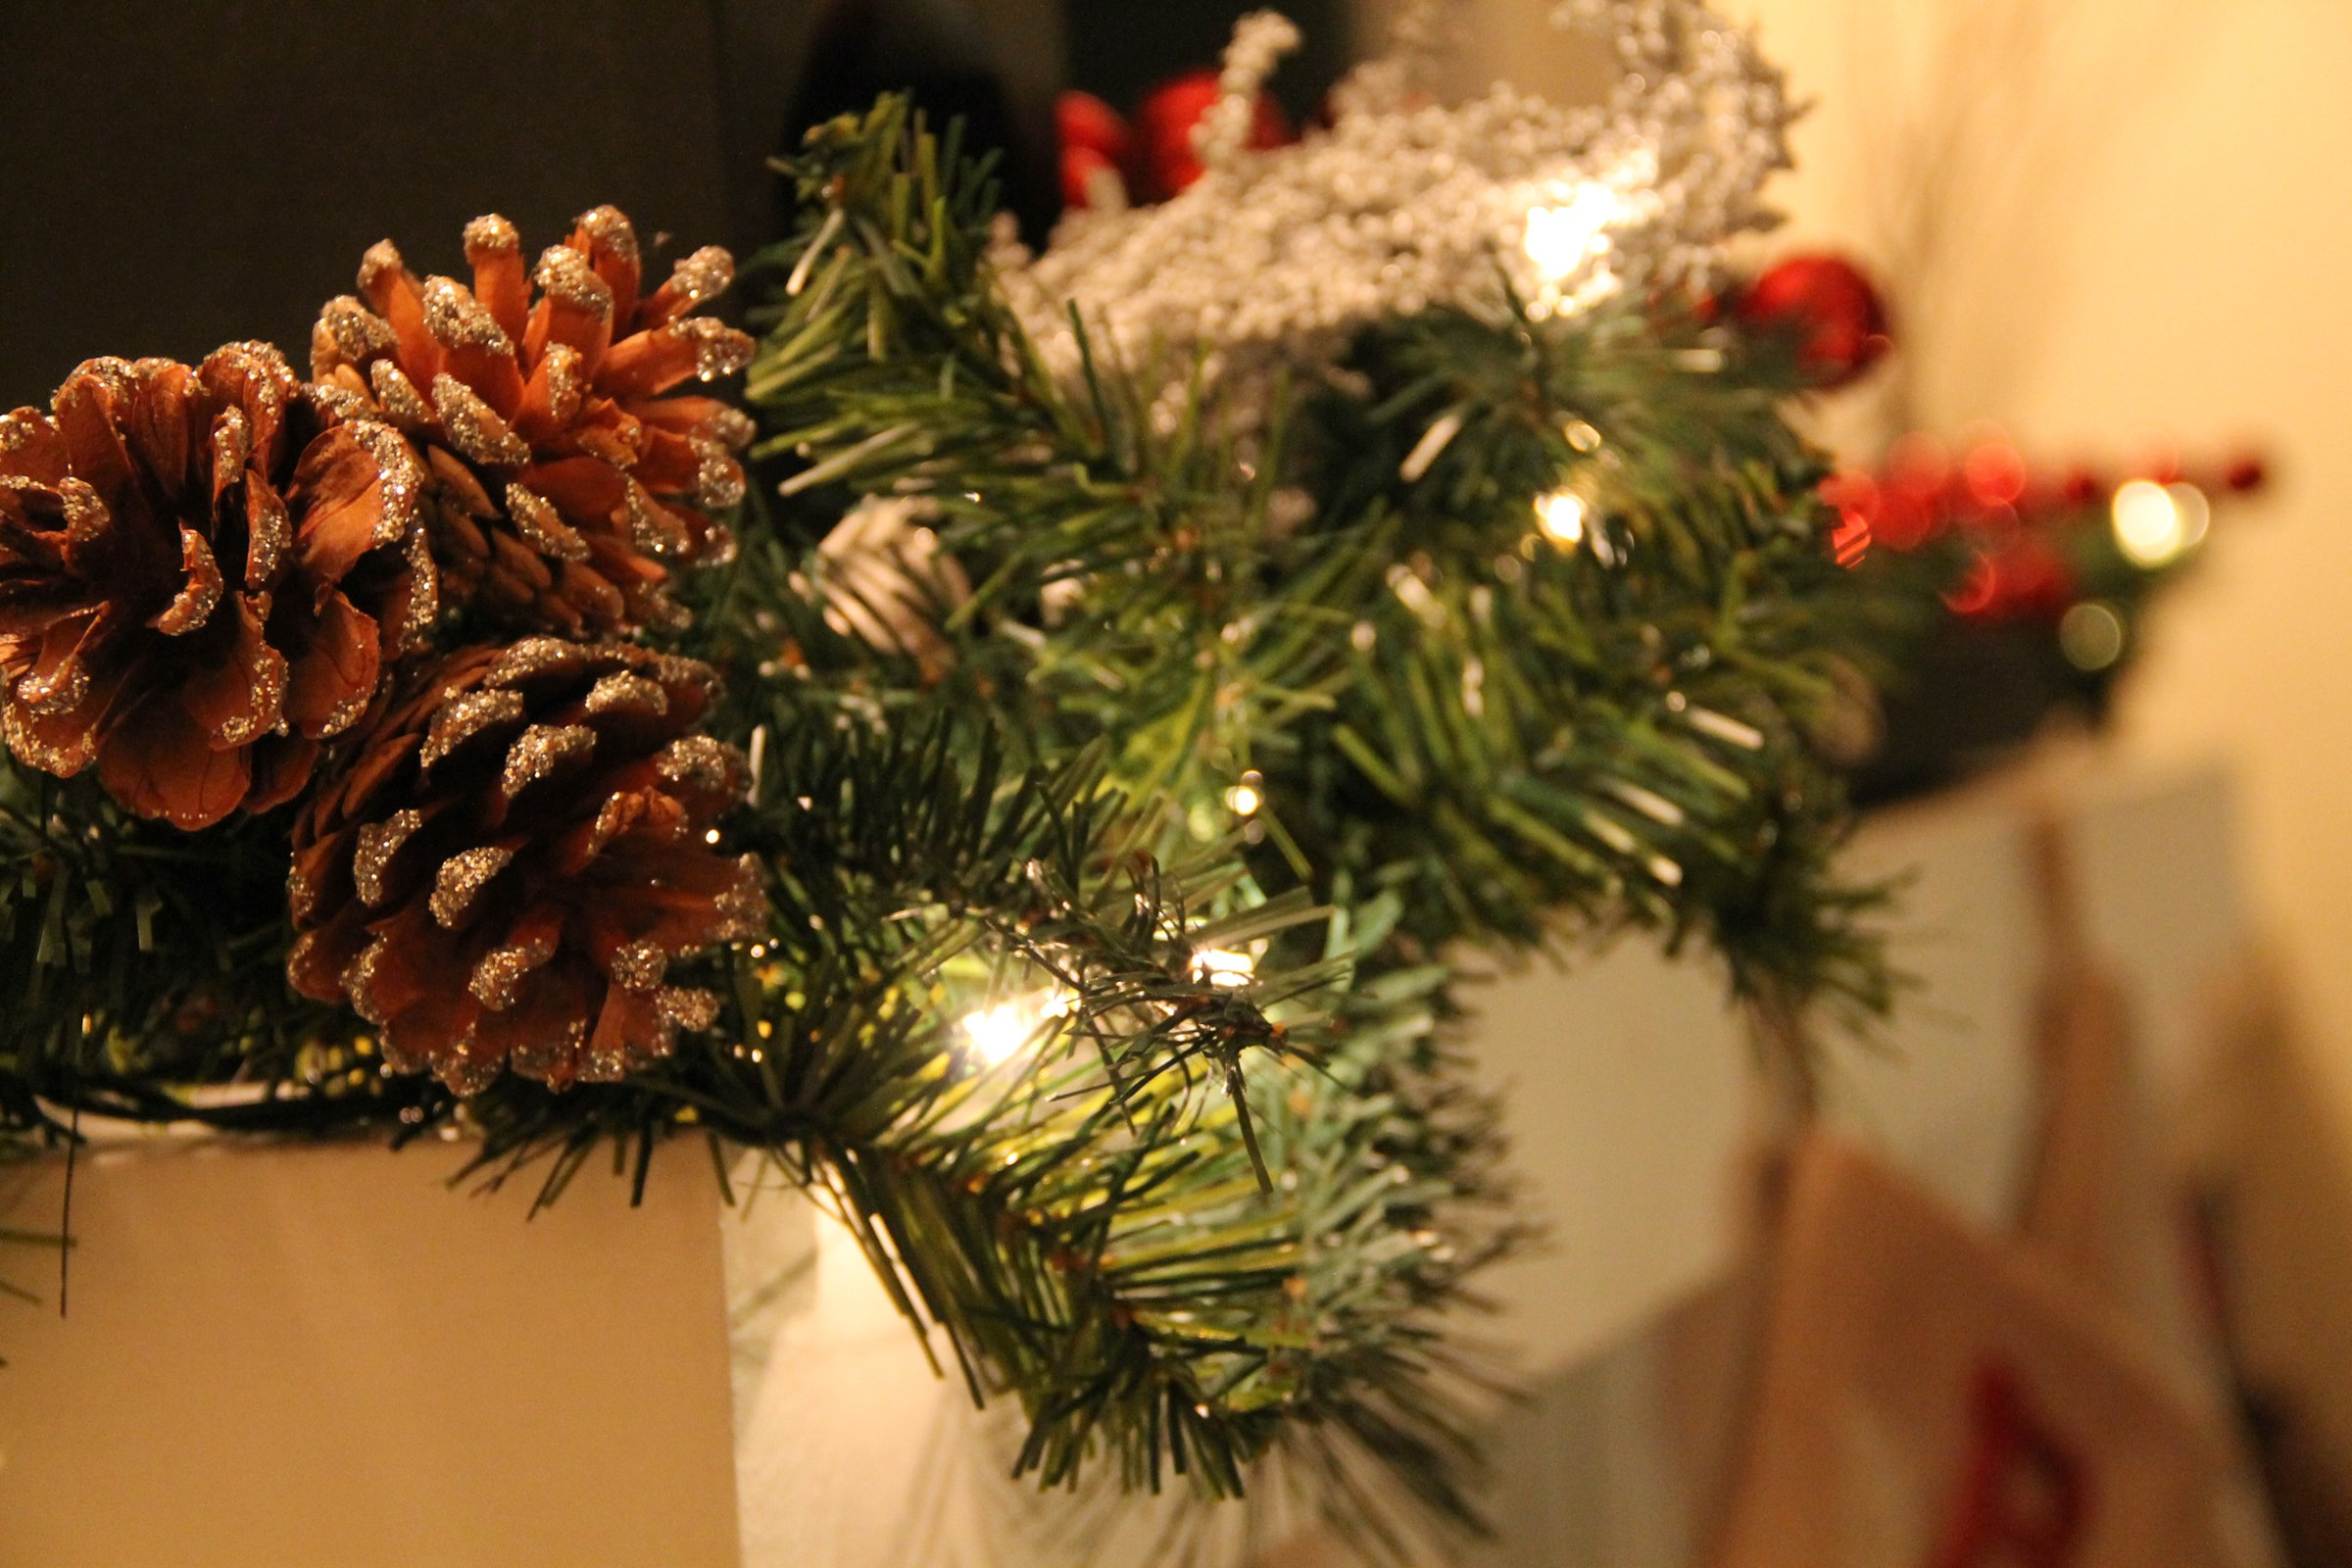 Free Stock of Christmas Garland with Pine Cones